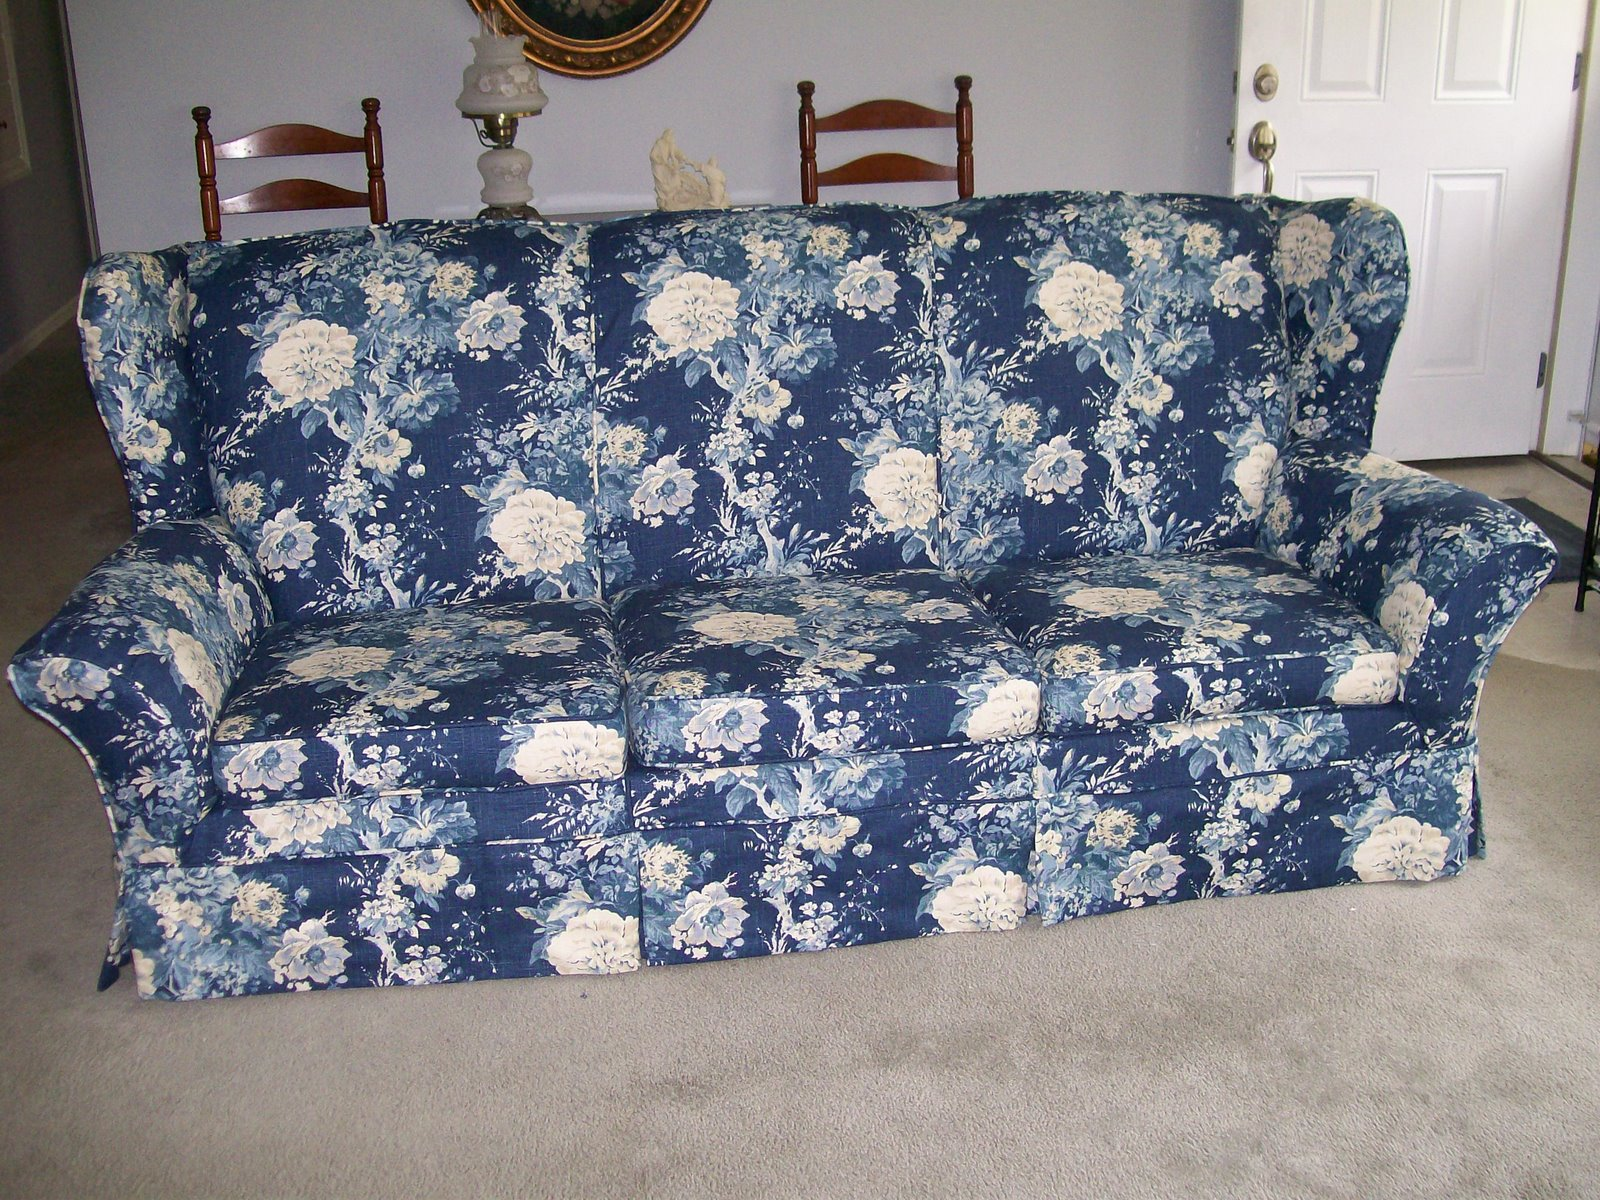 Early American Style Sofas Sofa Cleaning Service Miami Home Design Ideas And Inspiration